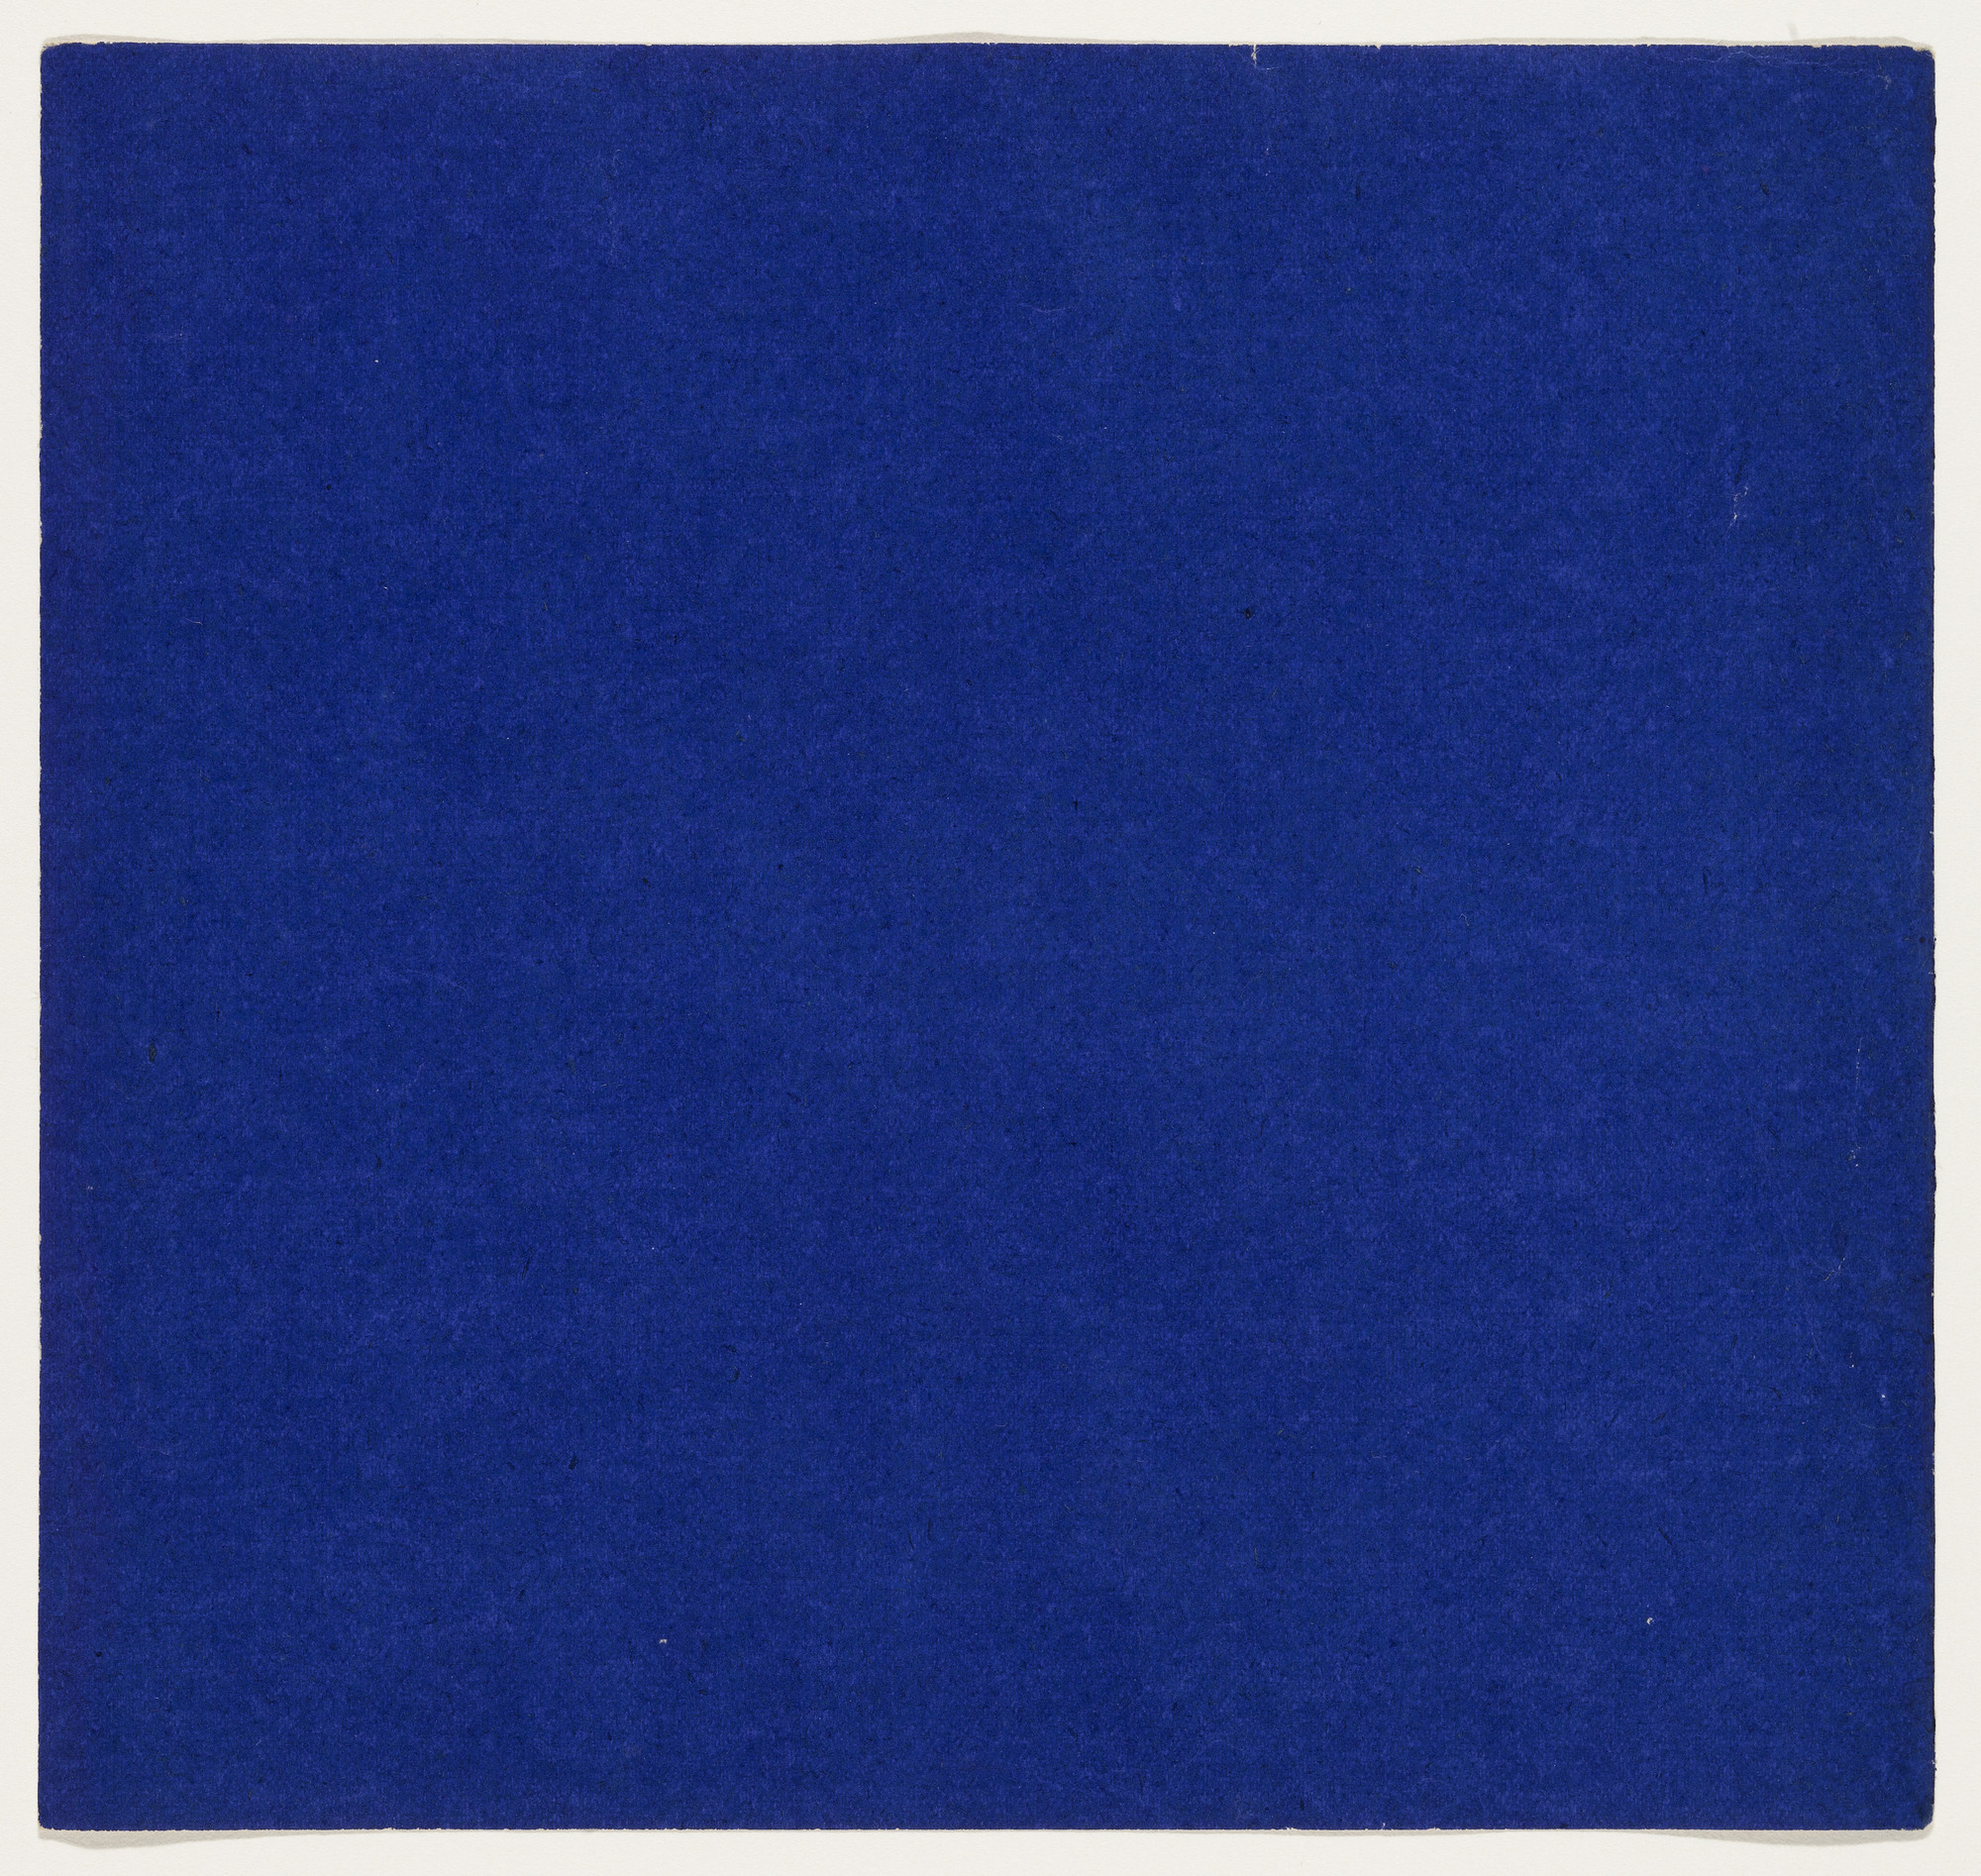 Ellsworth Kelly. Blue from the series Line Form Color. 1951